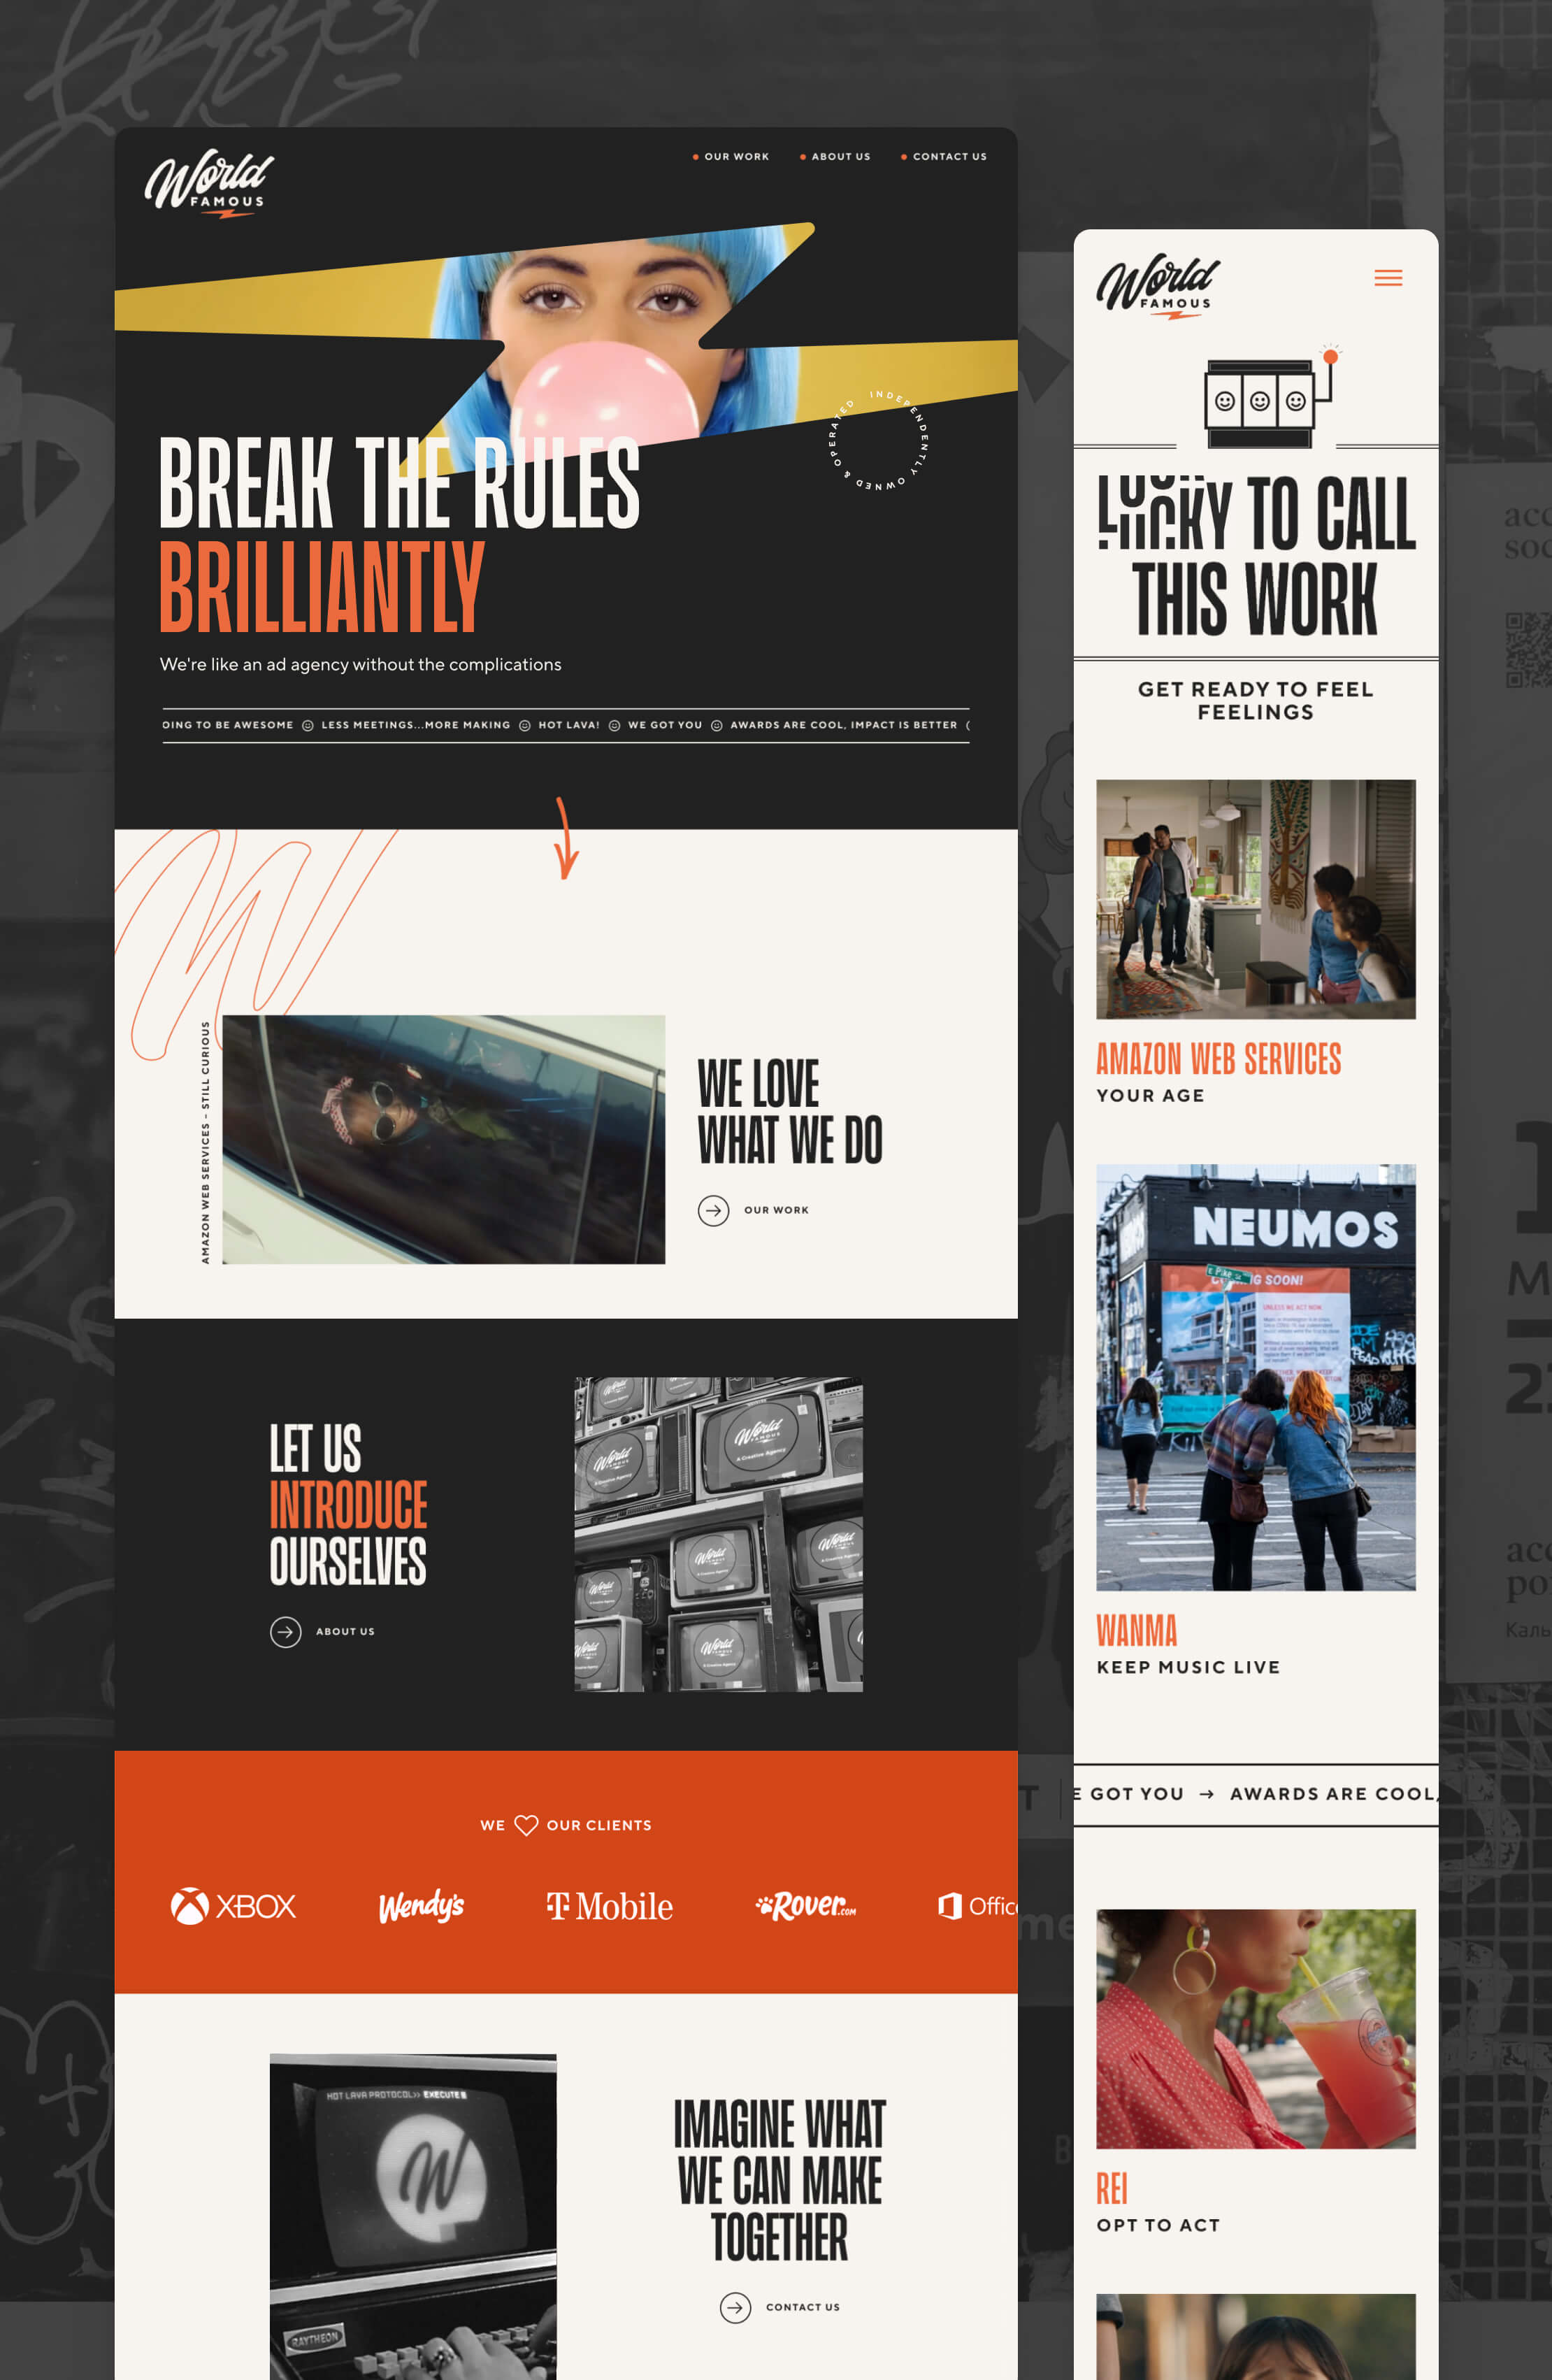 Screenshots of the home page and work page for World Famous.